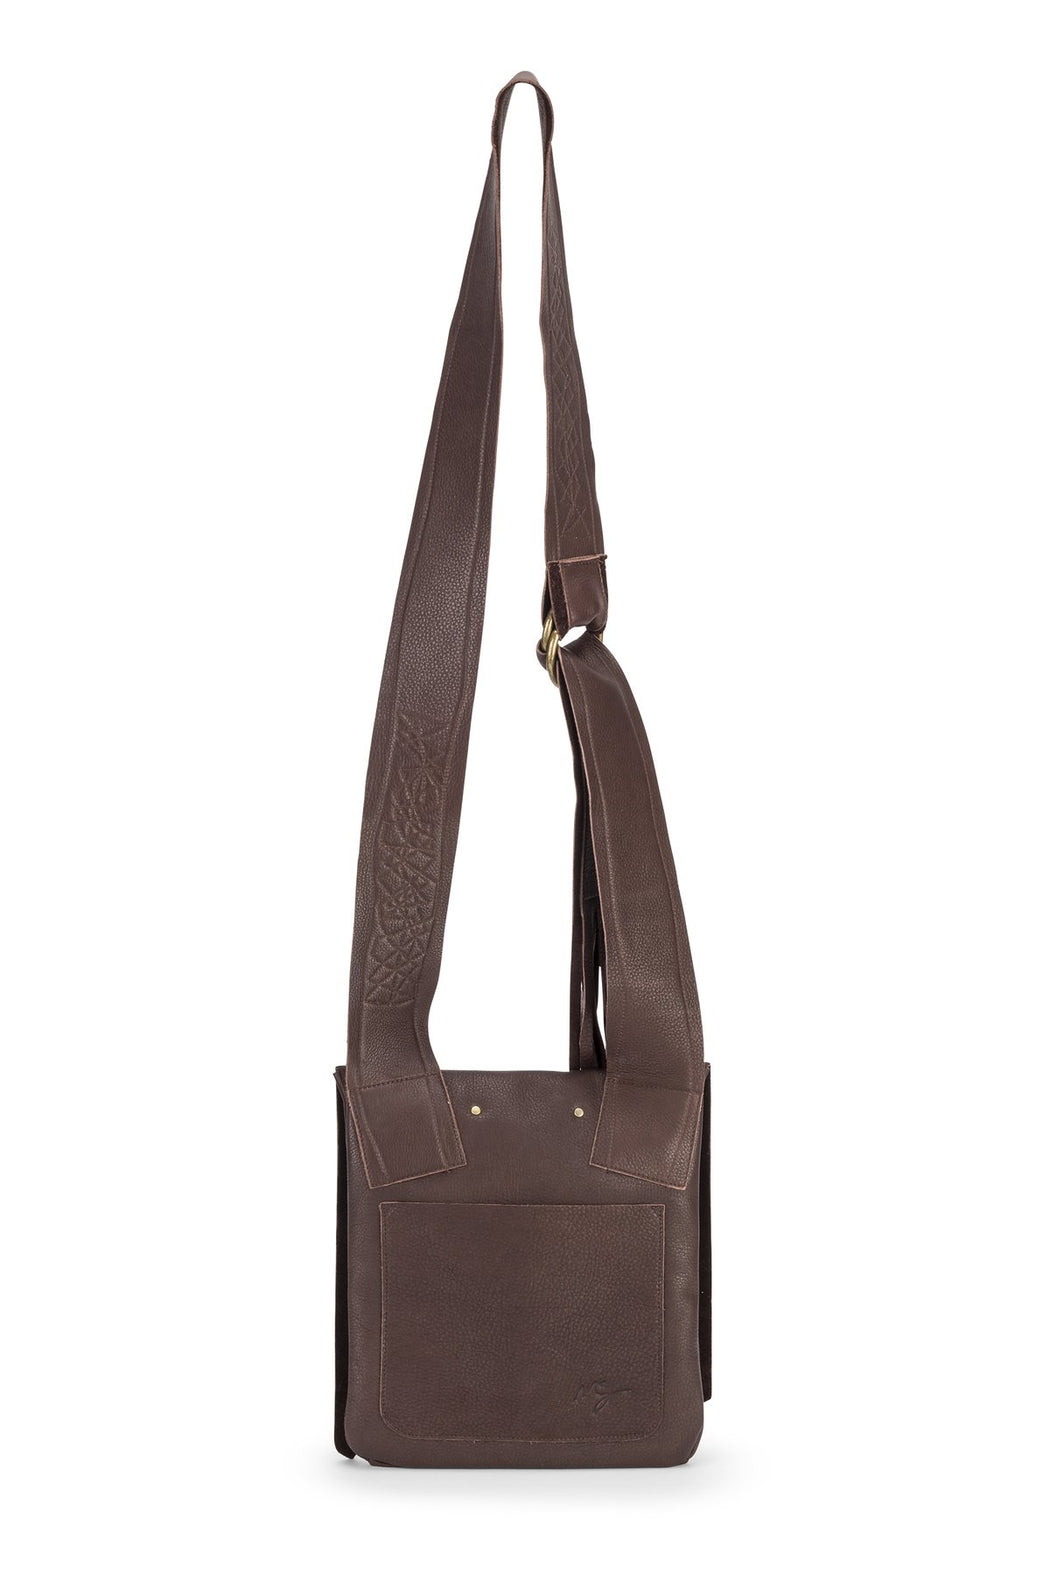 Molly G Wanderer Bag in Chocolate